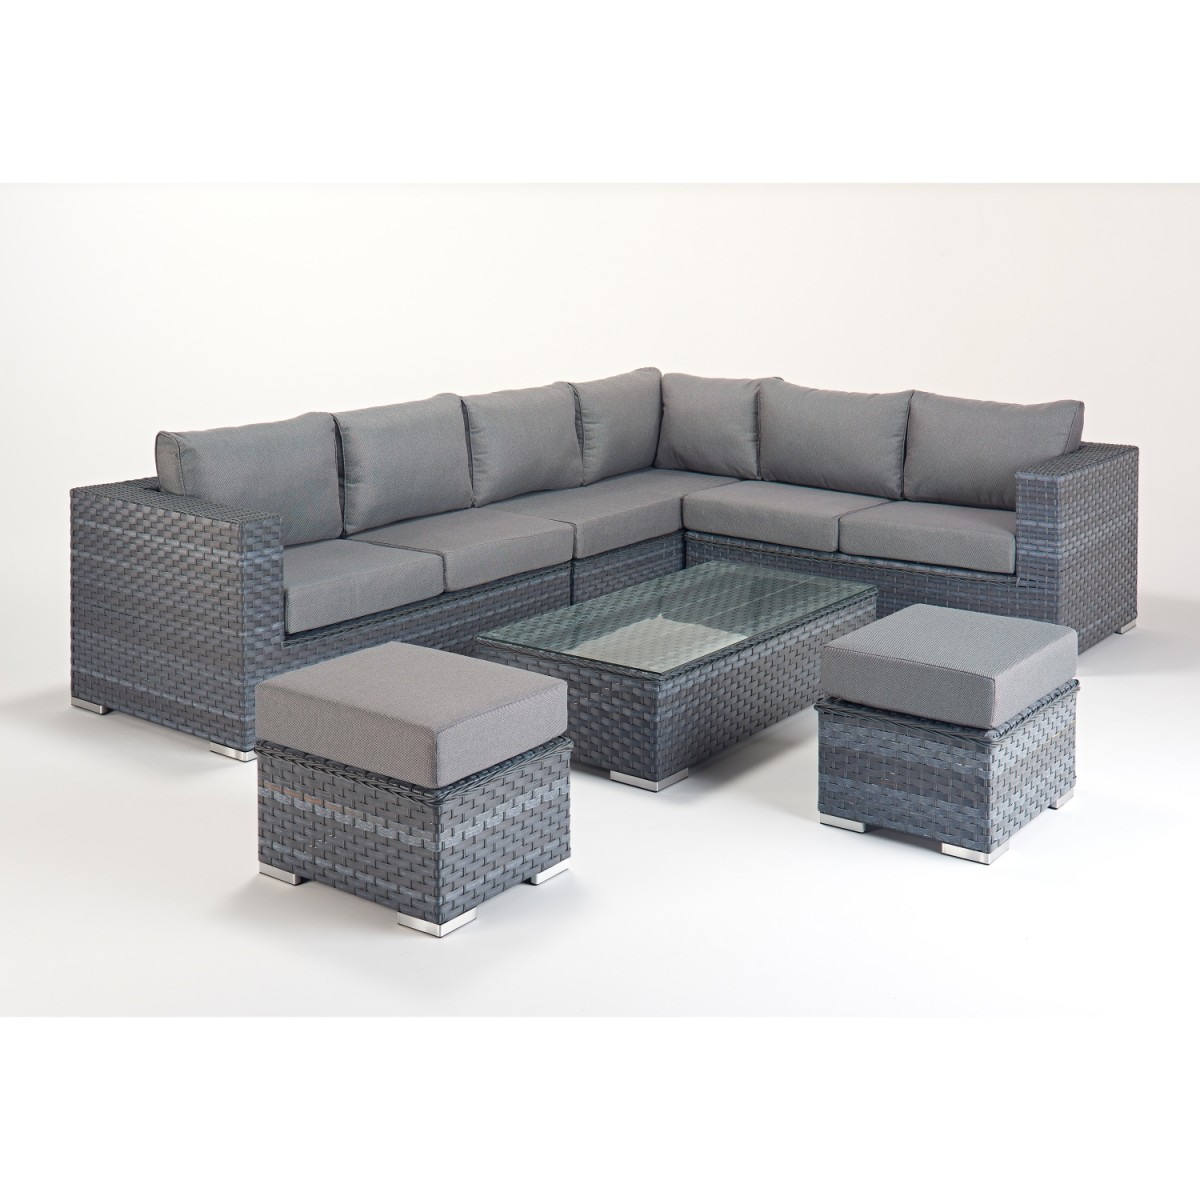 Rattan Corner Sofa Reviews Rattan Set Platinum Large Corner Sofa Set Wgf 510 Right Hand